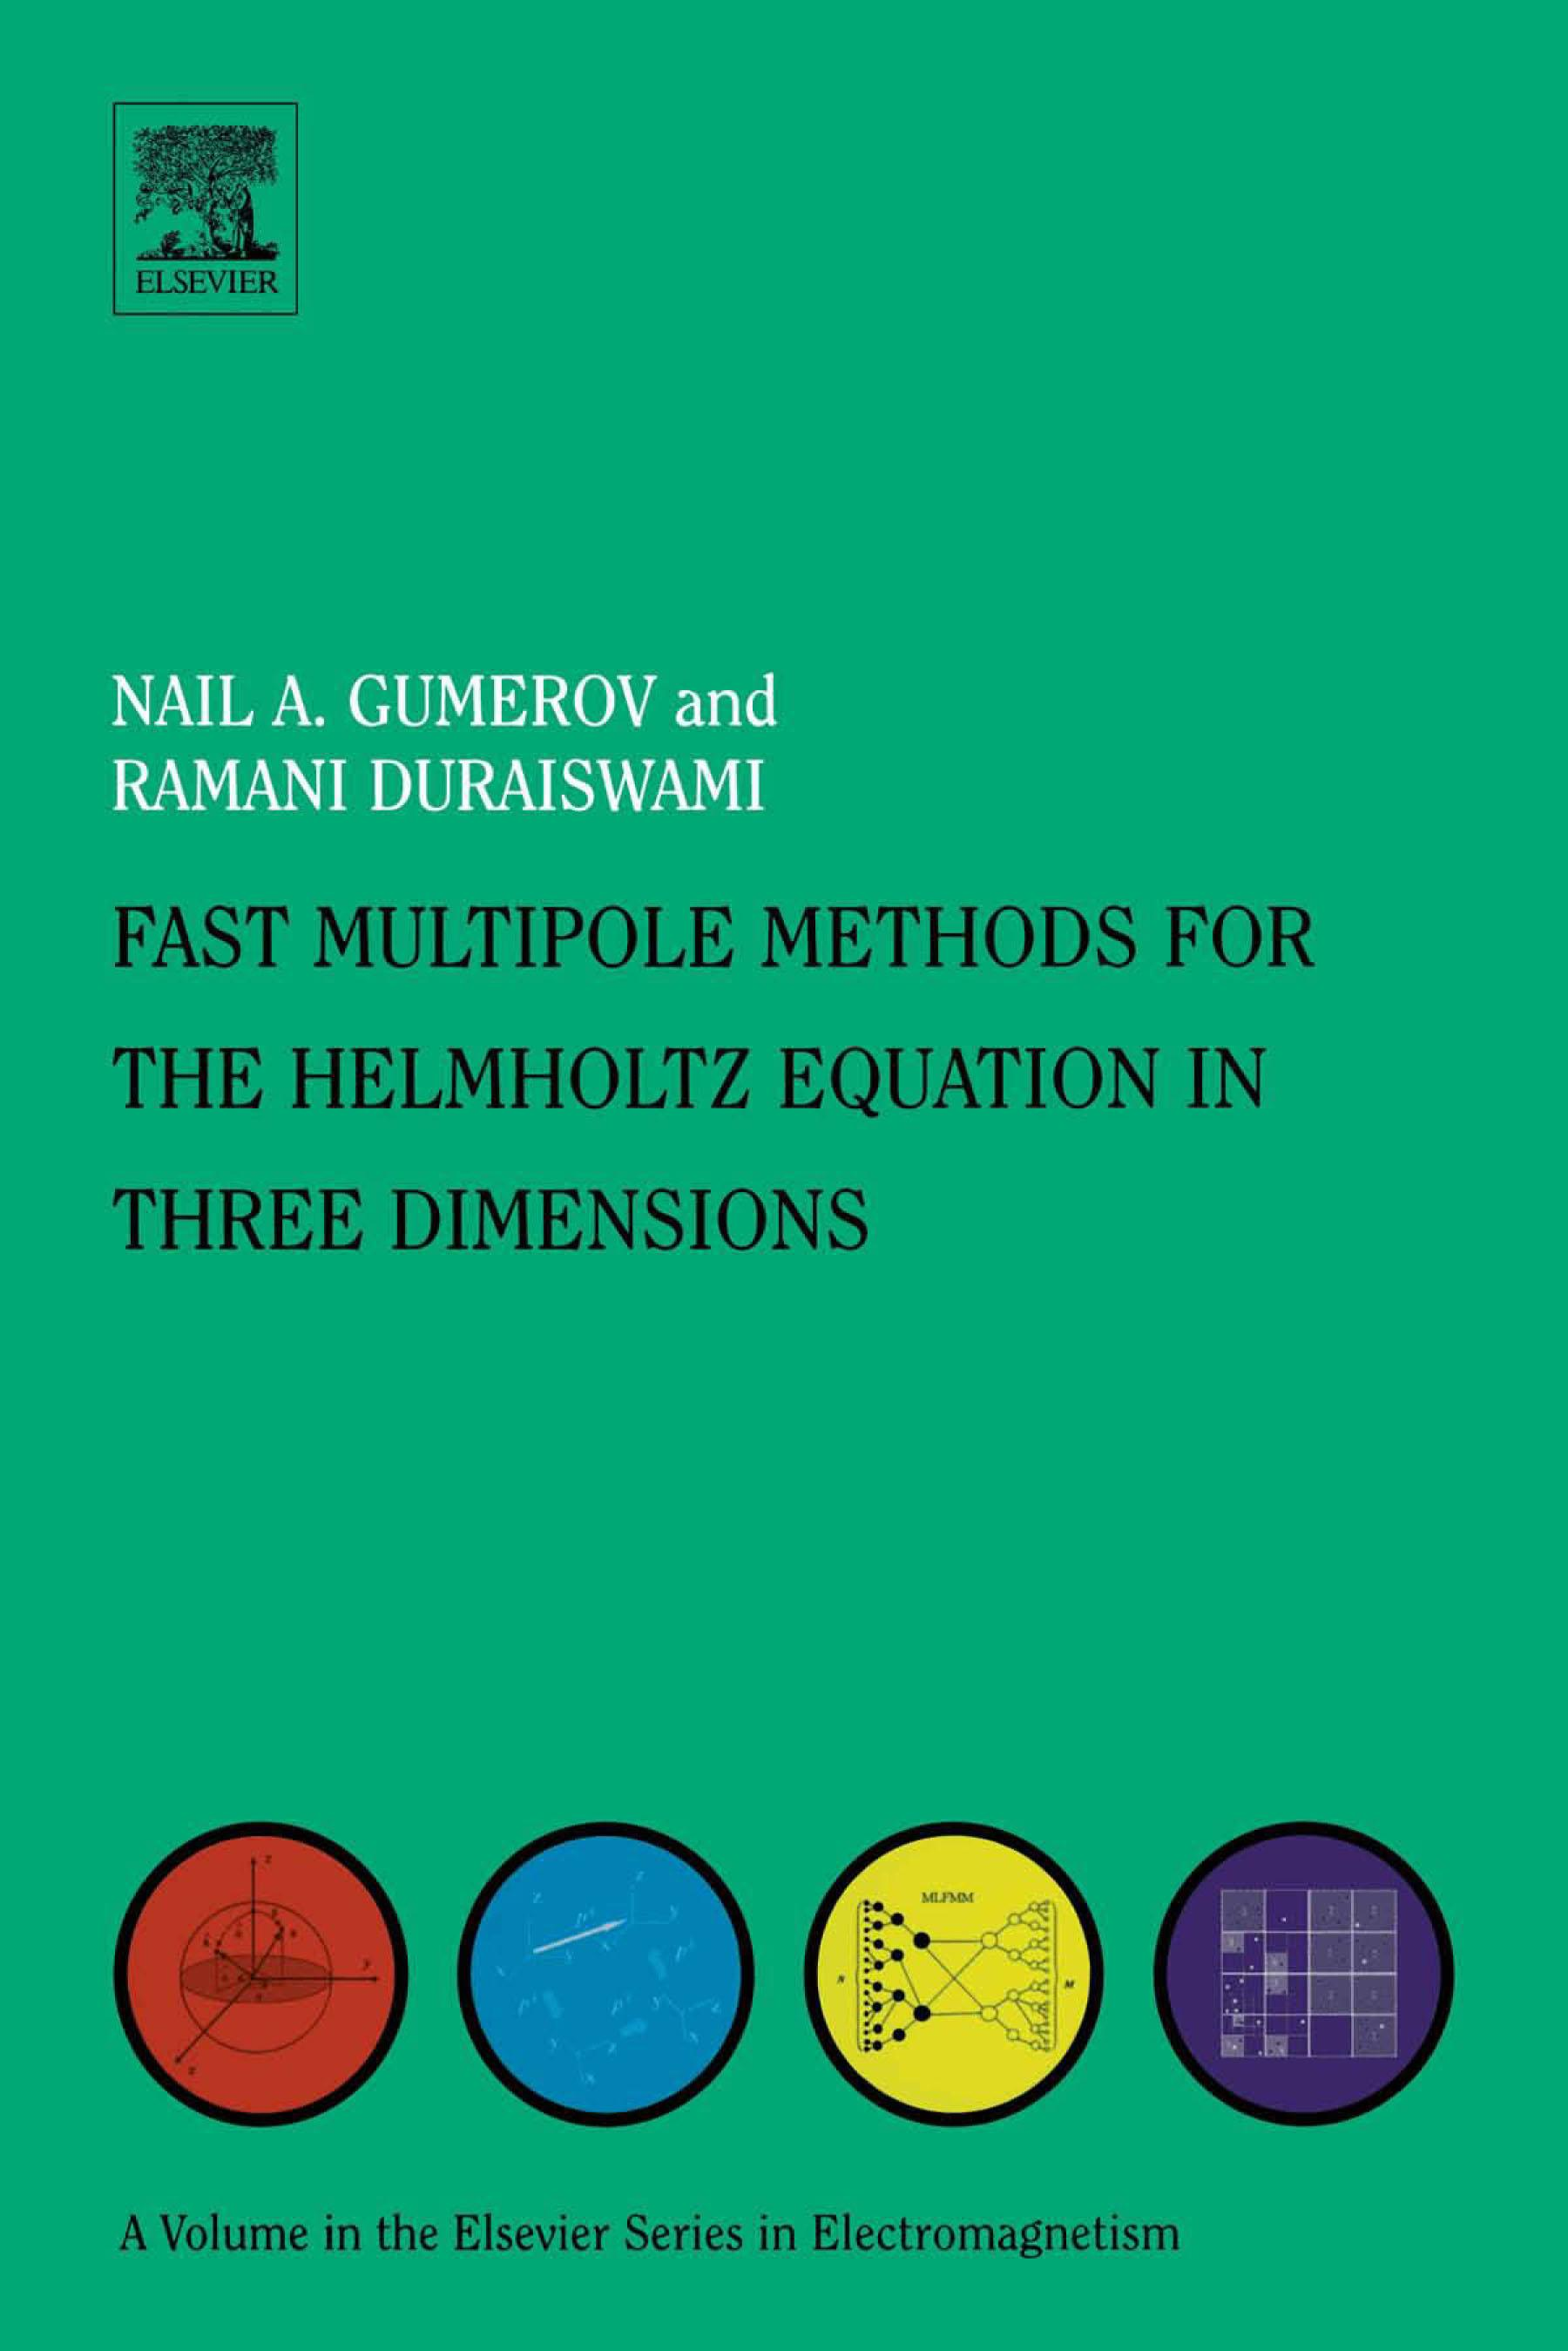 Fast Multipole Methods for the Helmholtz Equation in Three Dimensions EB9780080531595